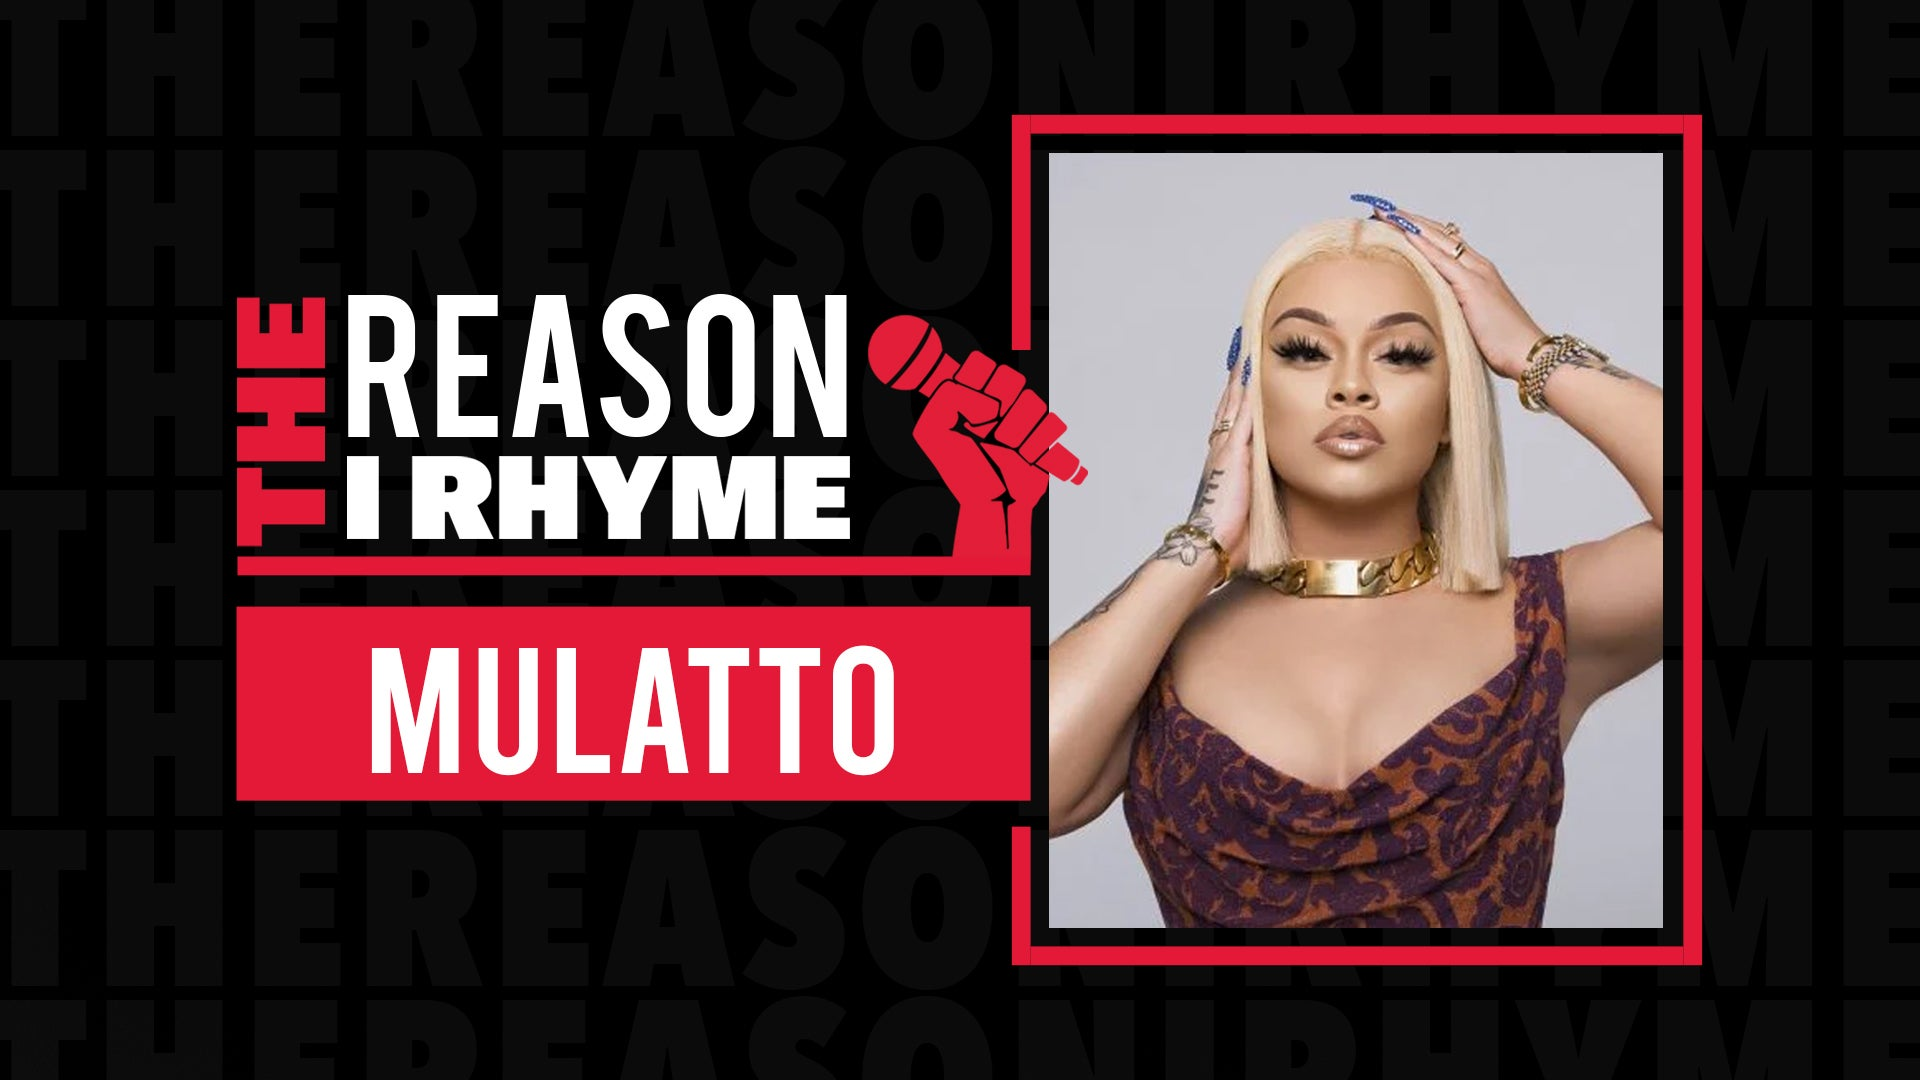 The Reason I Rhyme: Mulatto